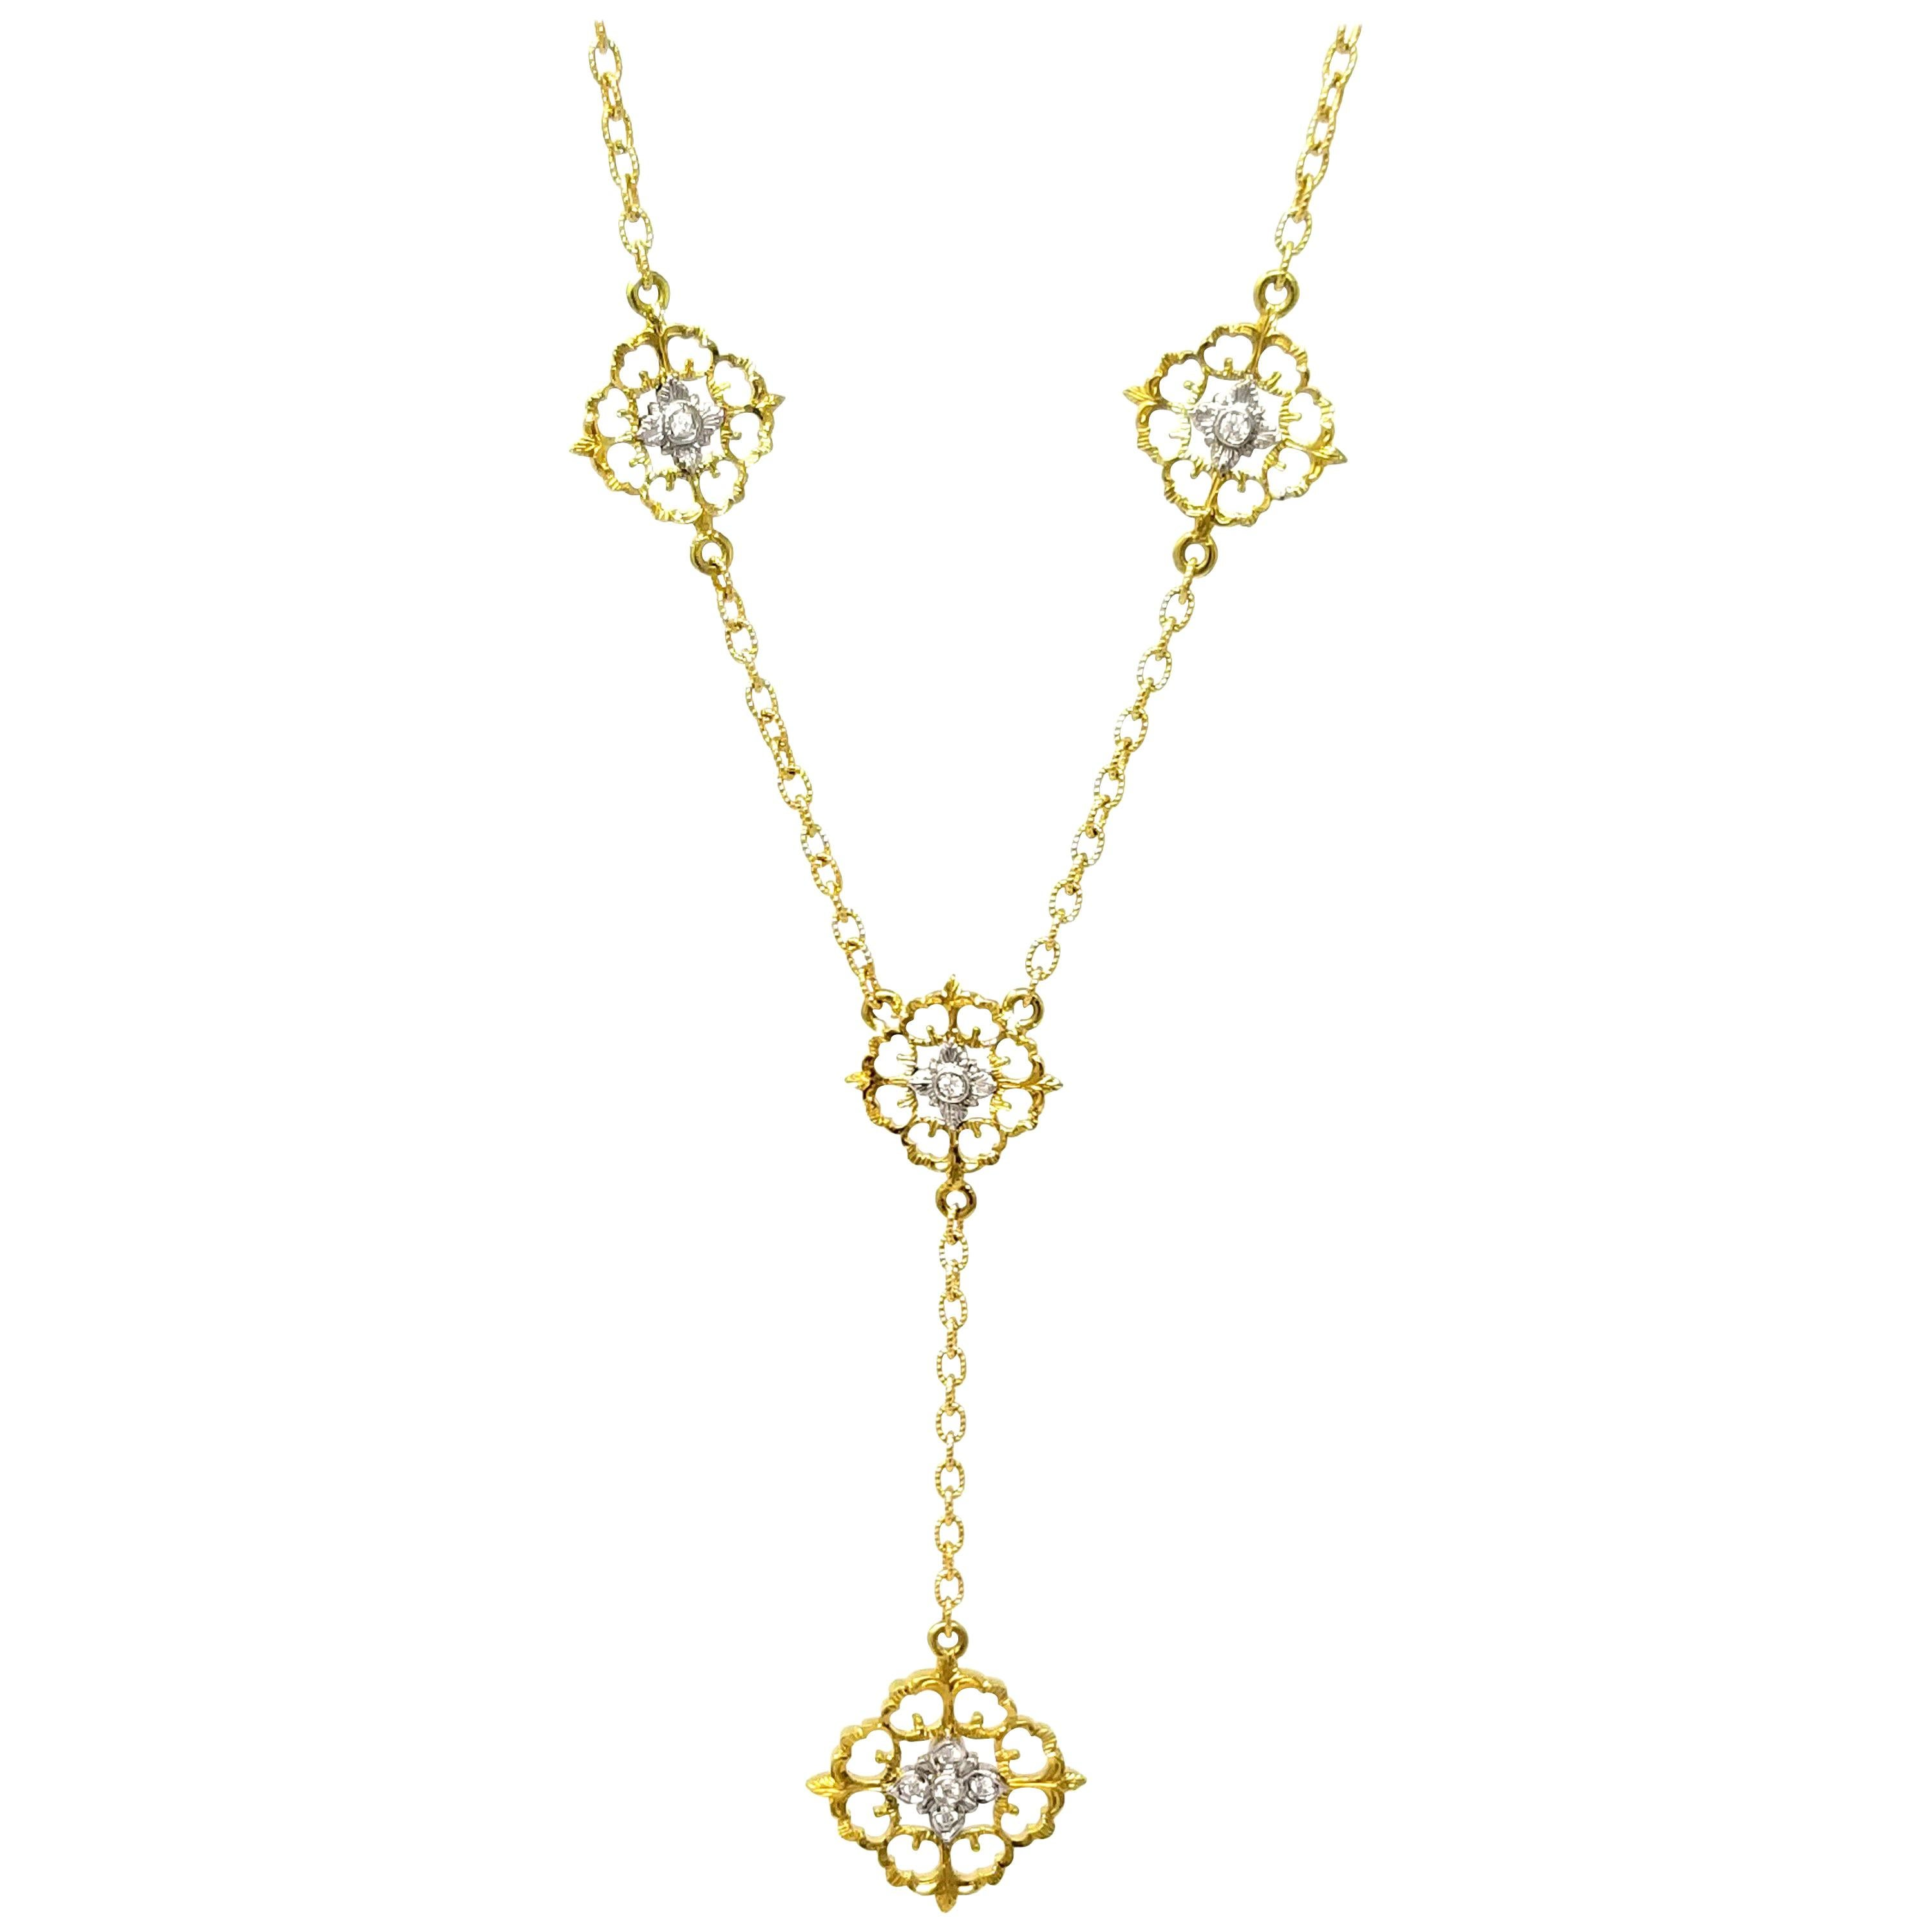 18 Karat and Diamond Hand-Engraved Necklace Handmade in Florence, Italy